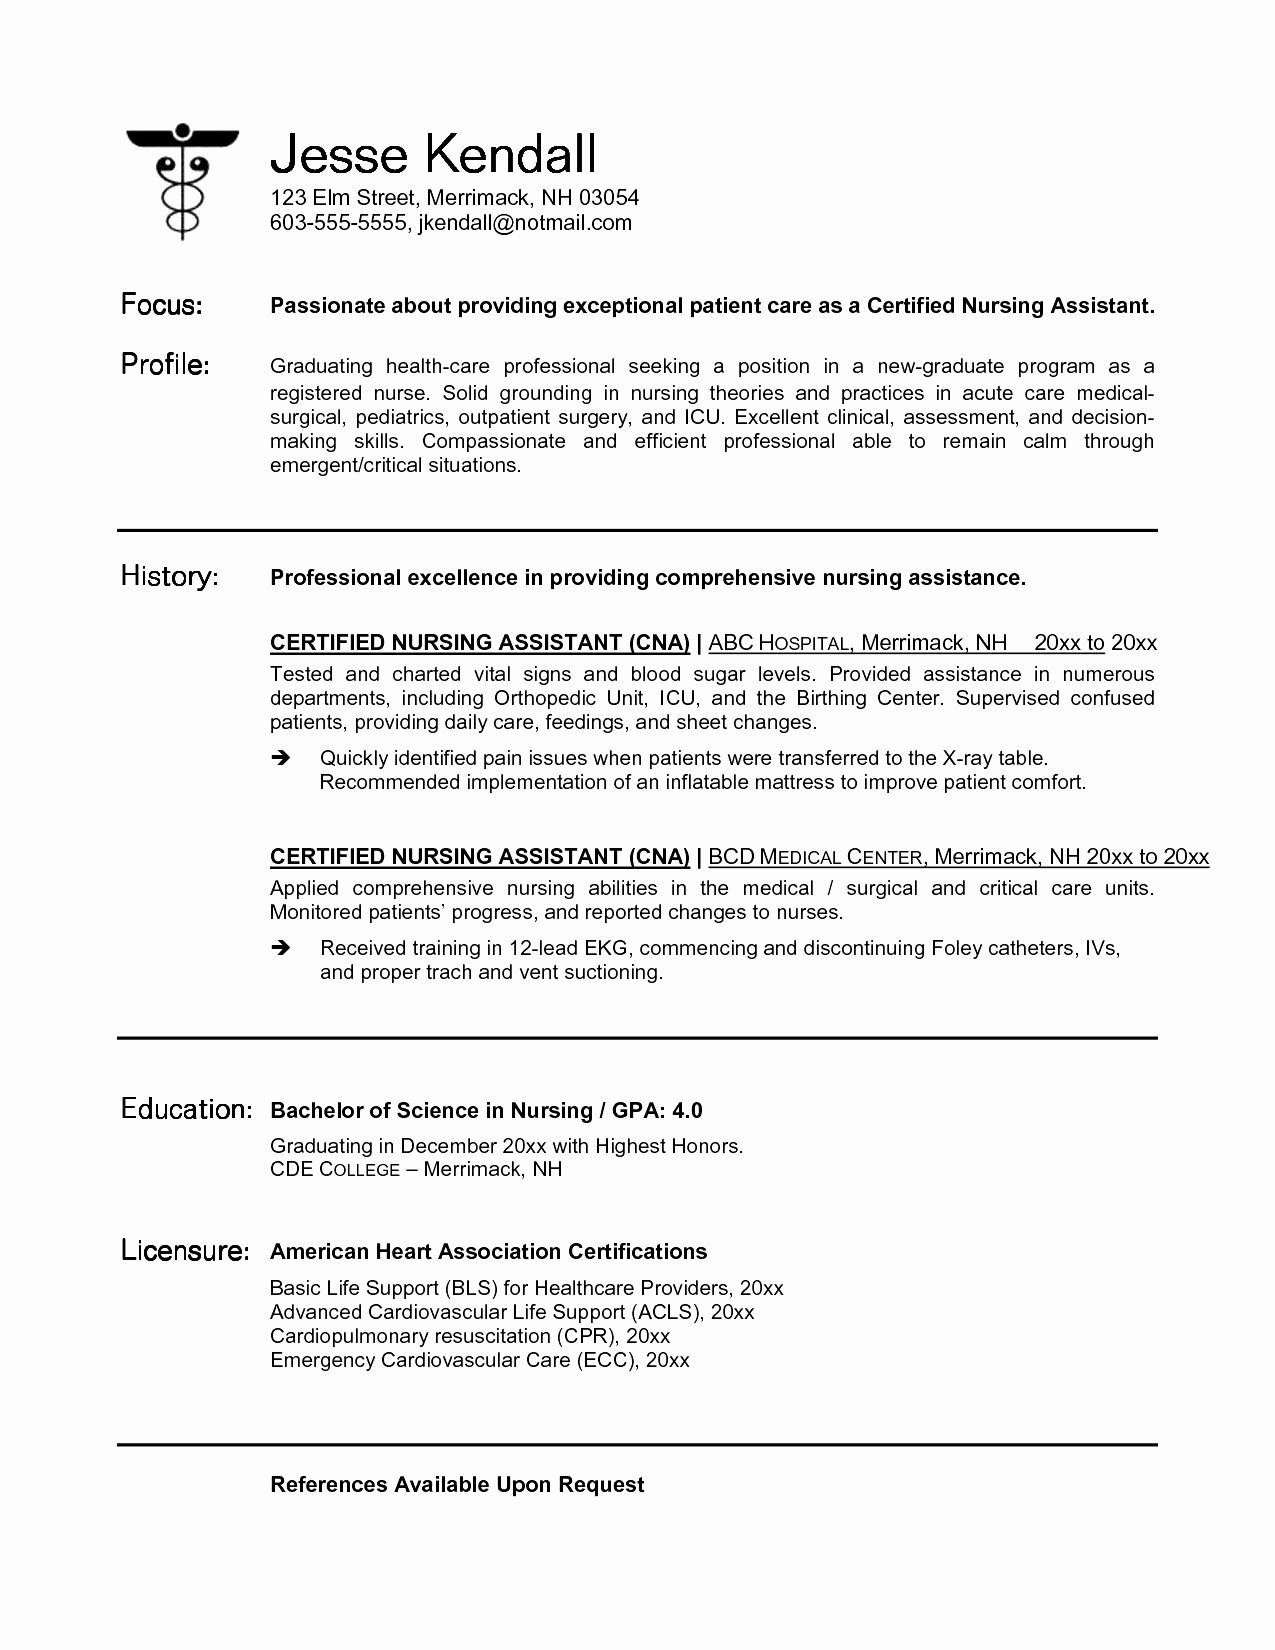 Things to Highlight on a Nurse Resume new Grad Medical